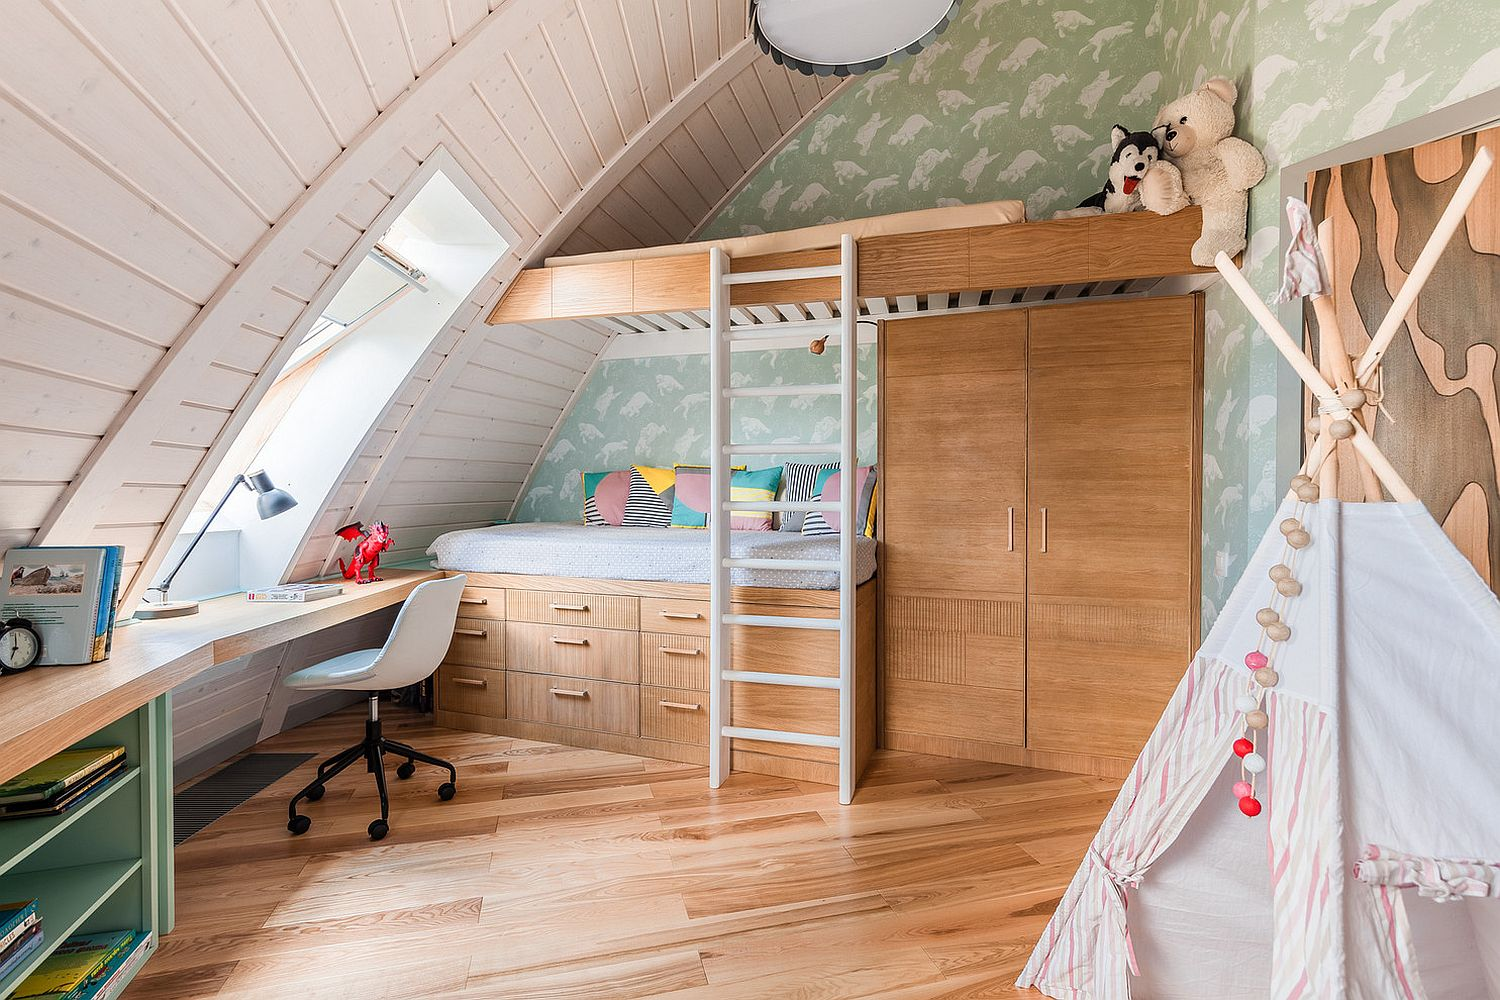 Attic bedroom with bunk bed that provides plenty of storage options